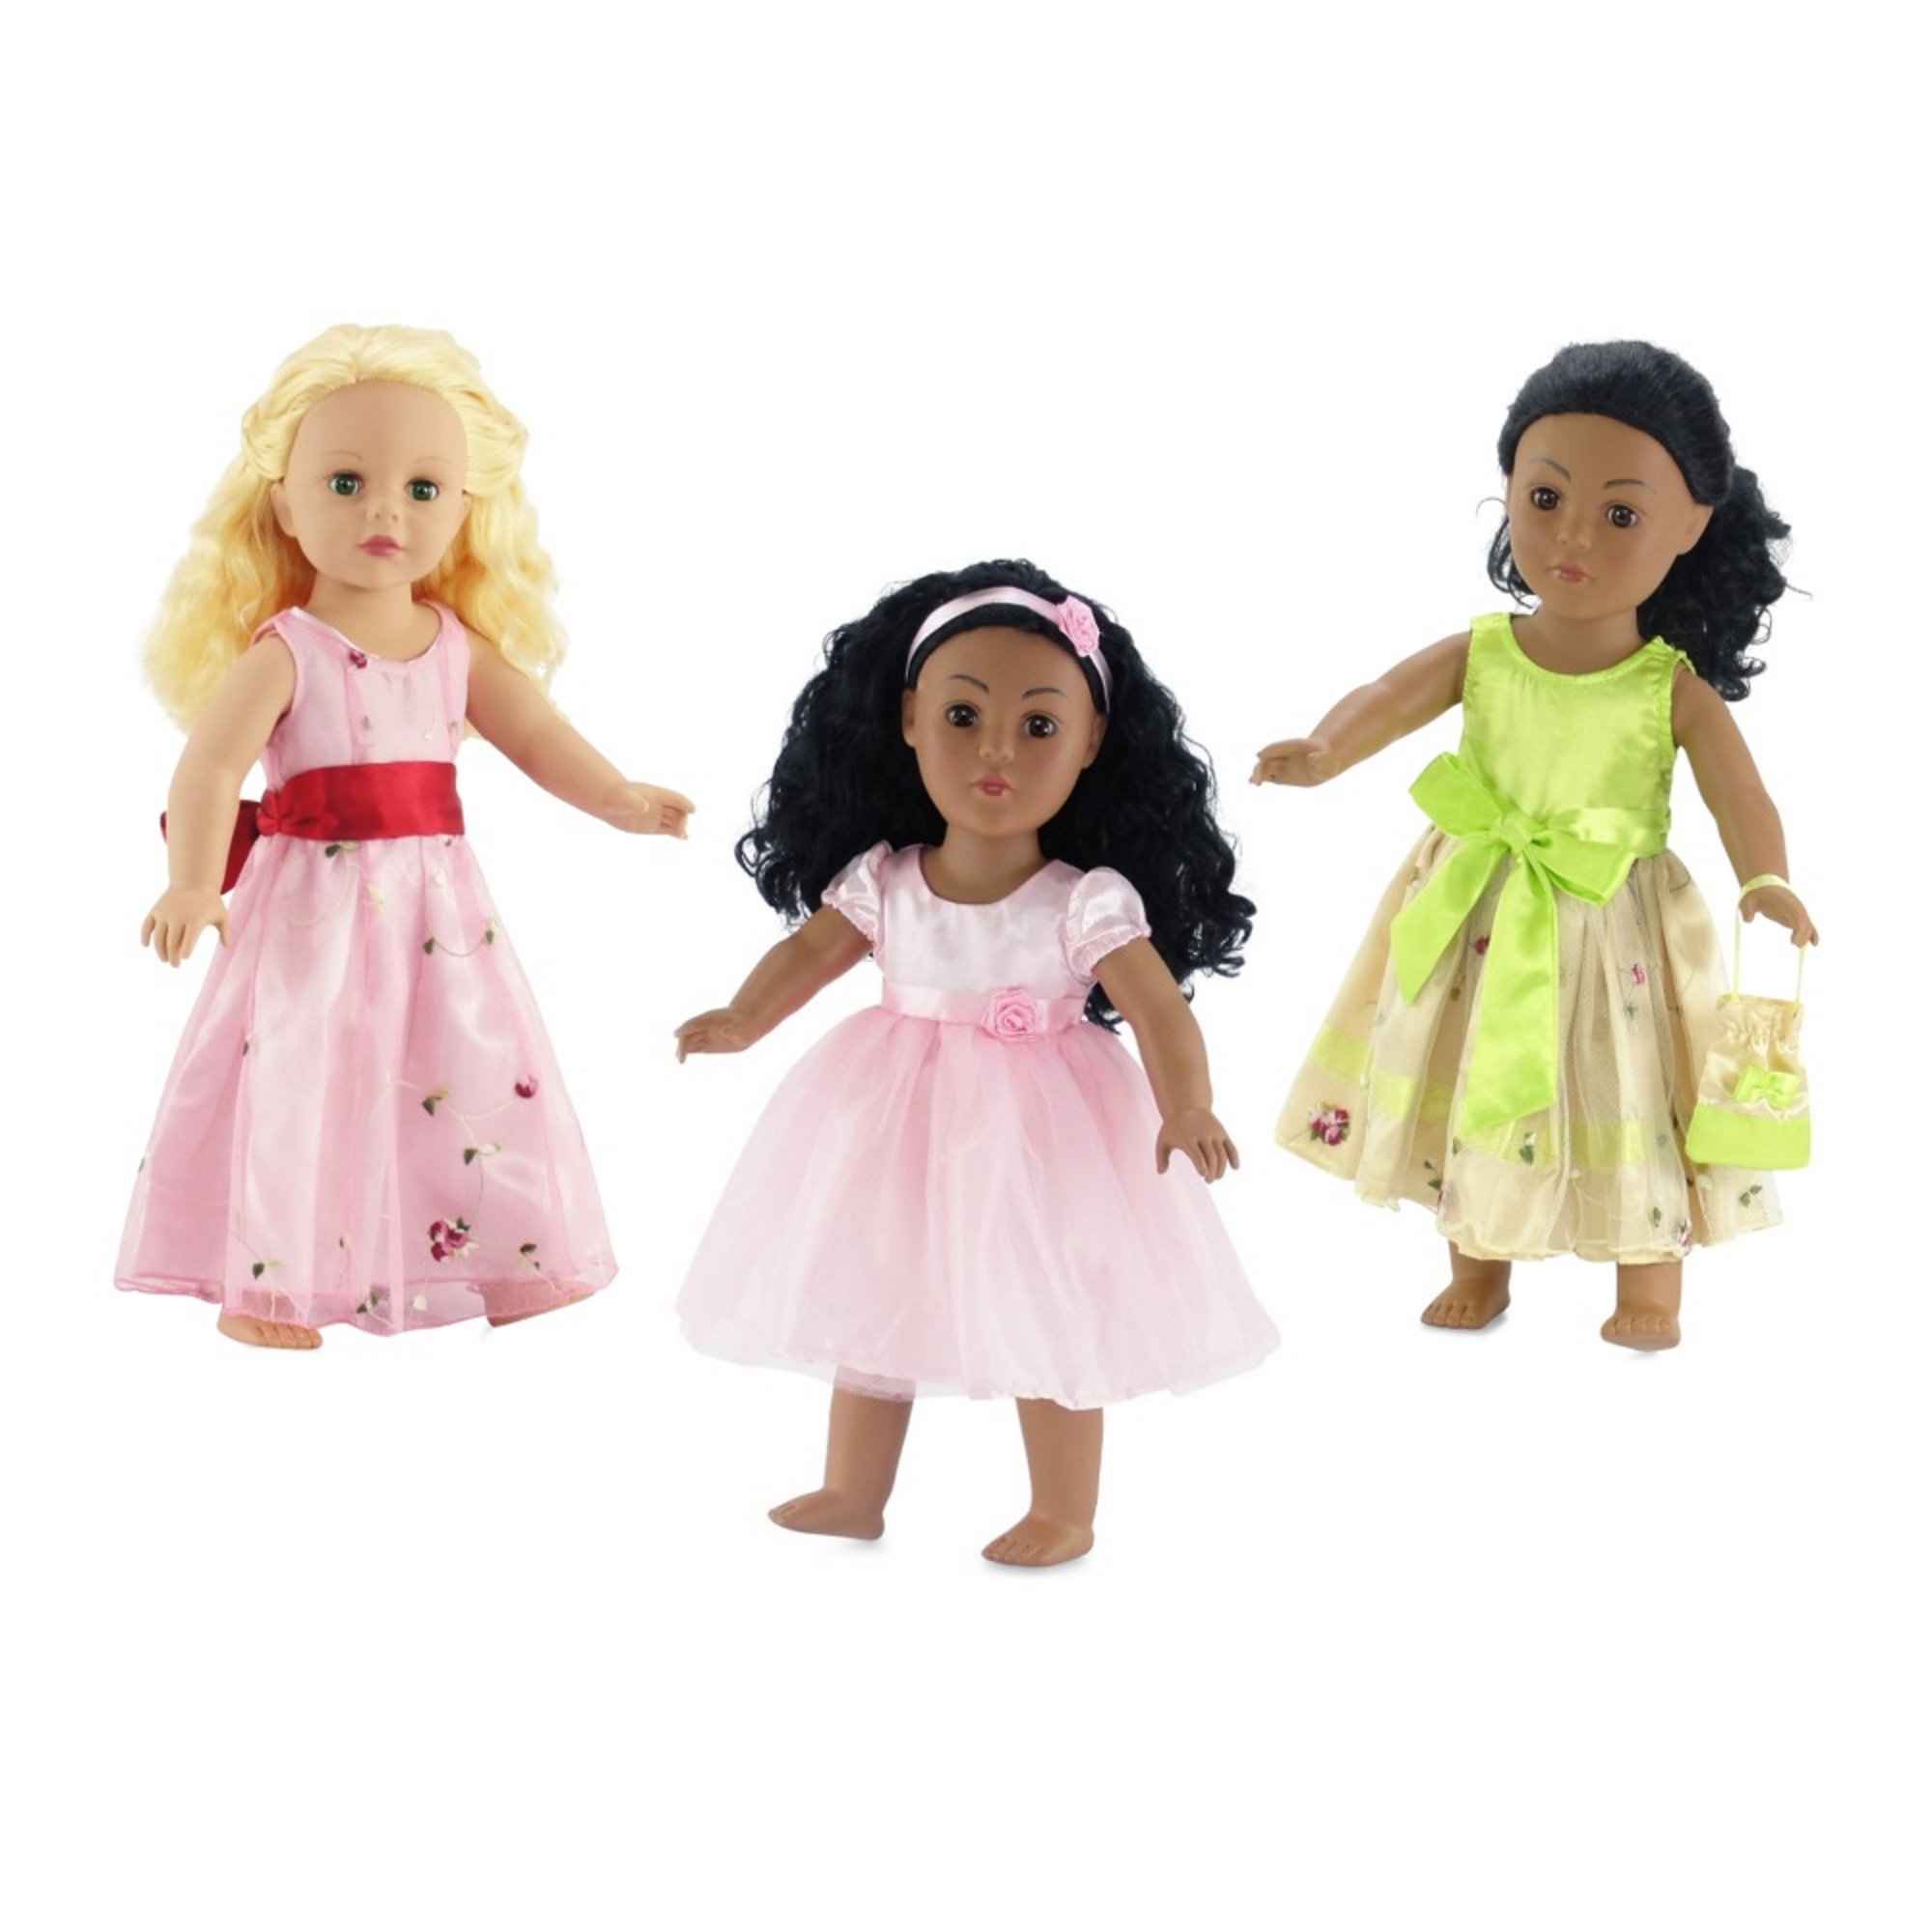 18-inch Doll Clothes | Value Bundle - Set of 3 Doll Dresses, Including Pink Dress with Sash, Green Floral Dress with Purse, and Lovely Pink Tutu Dress with Matching Headband | Fits American Girl Dolls